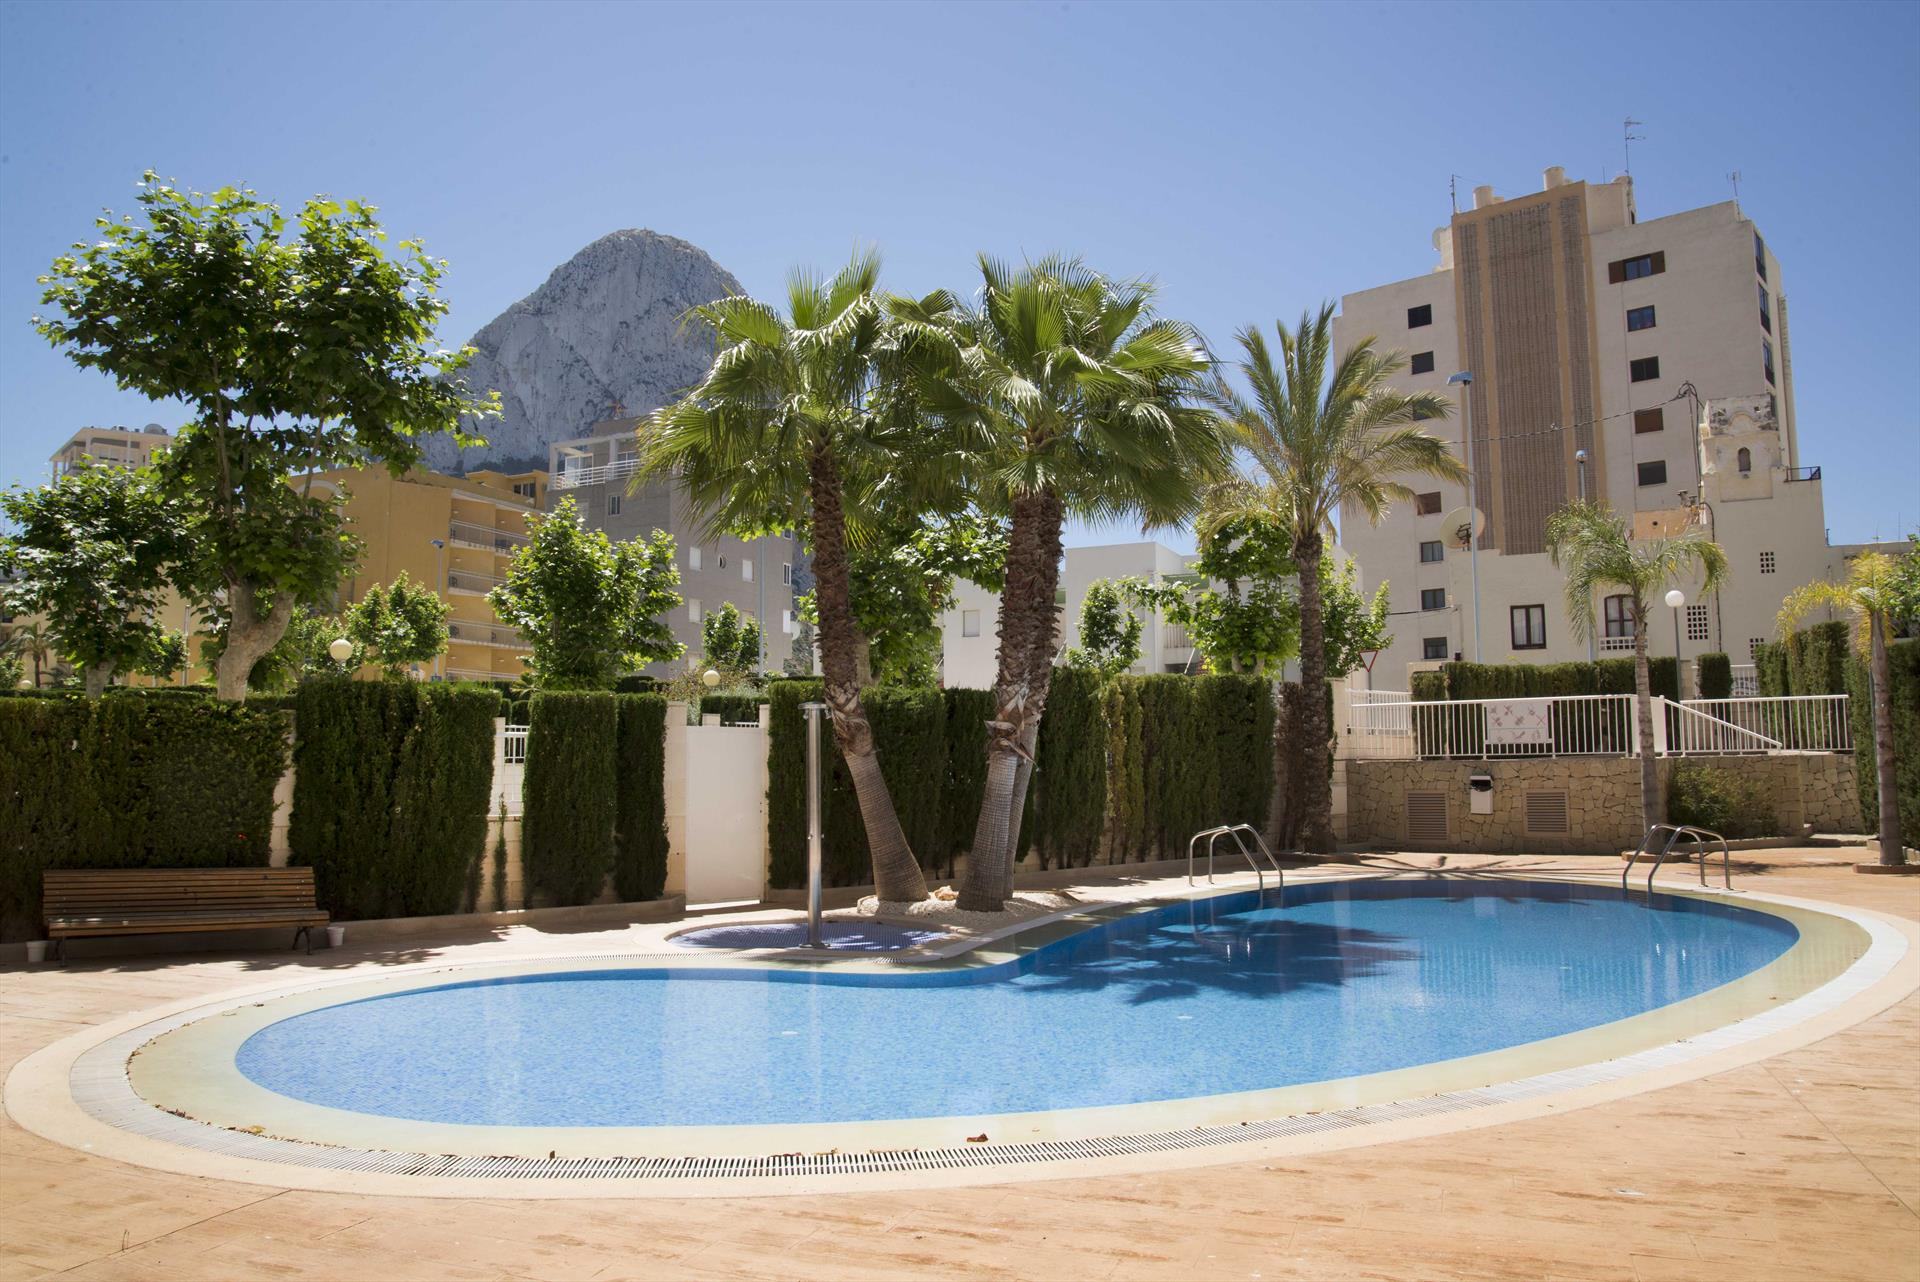 Estudio Apolo XIX 21R, Comfortable apartment  with communal pool in Calpe, on the Costa Blanca, Spain for 2 persons.....